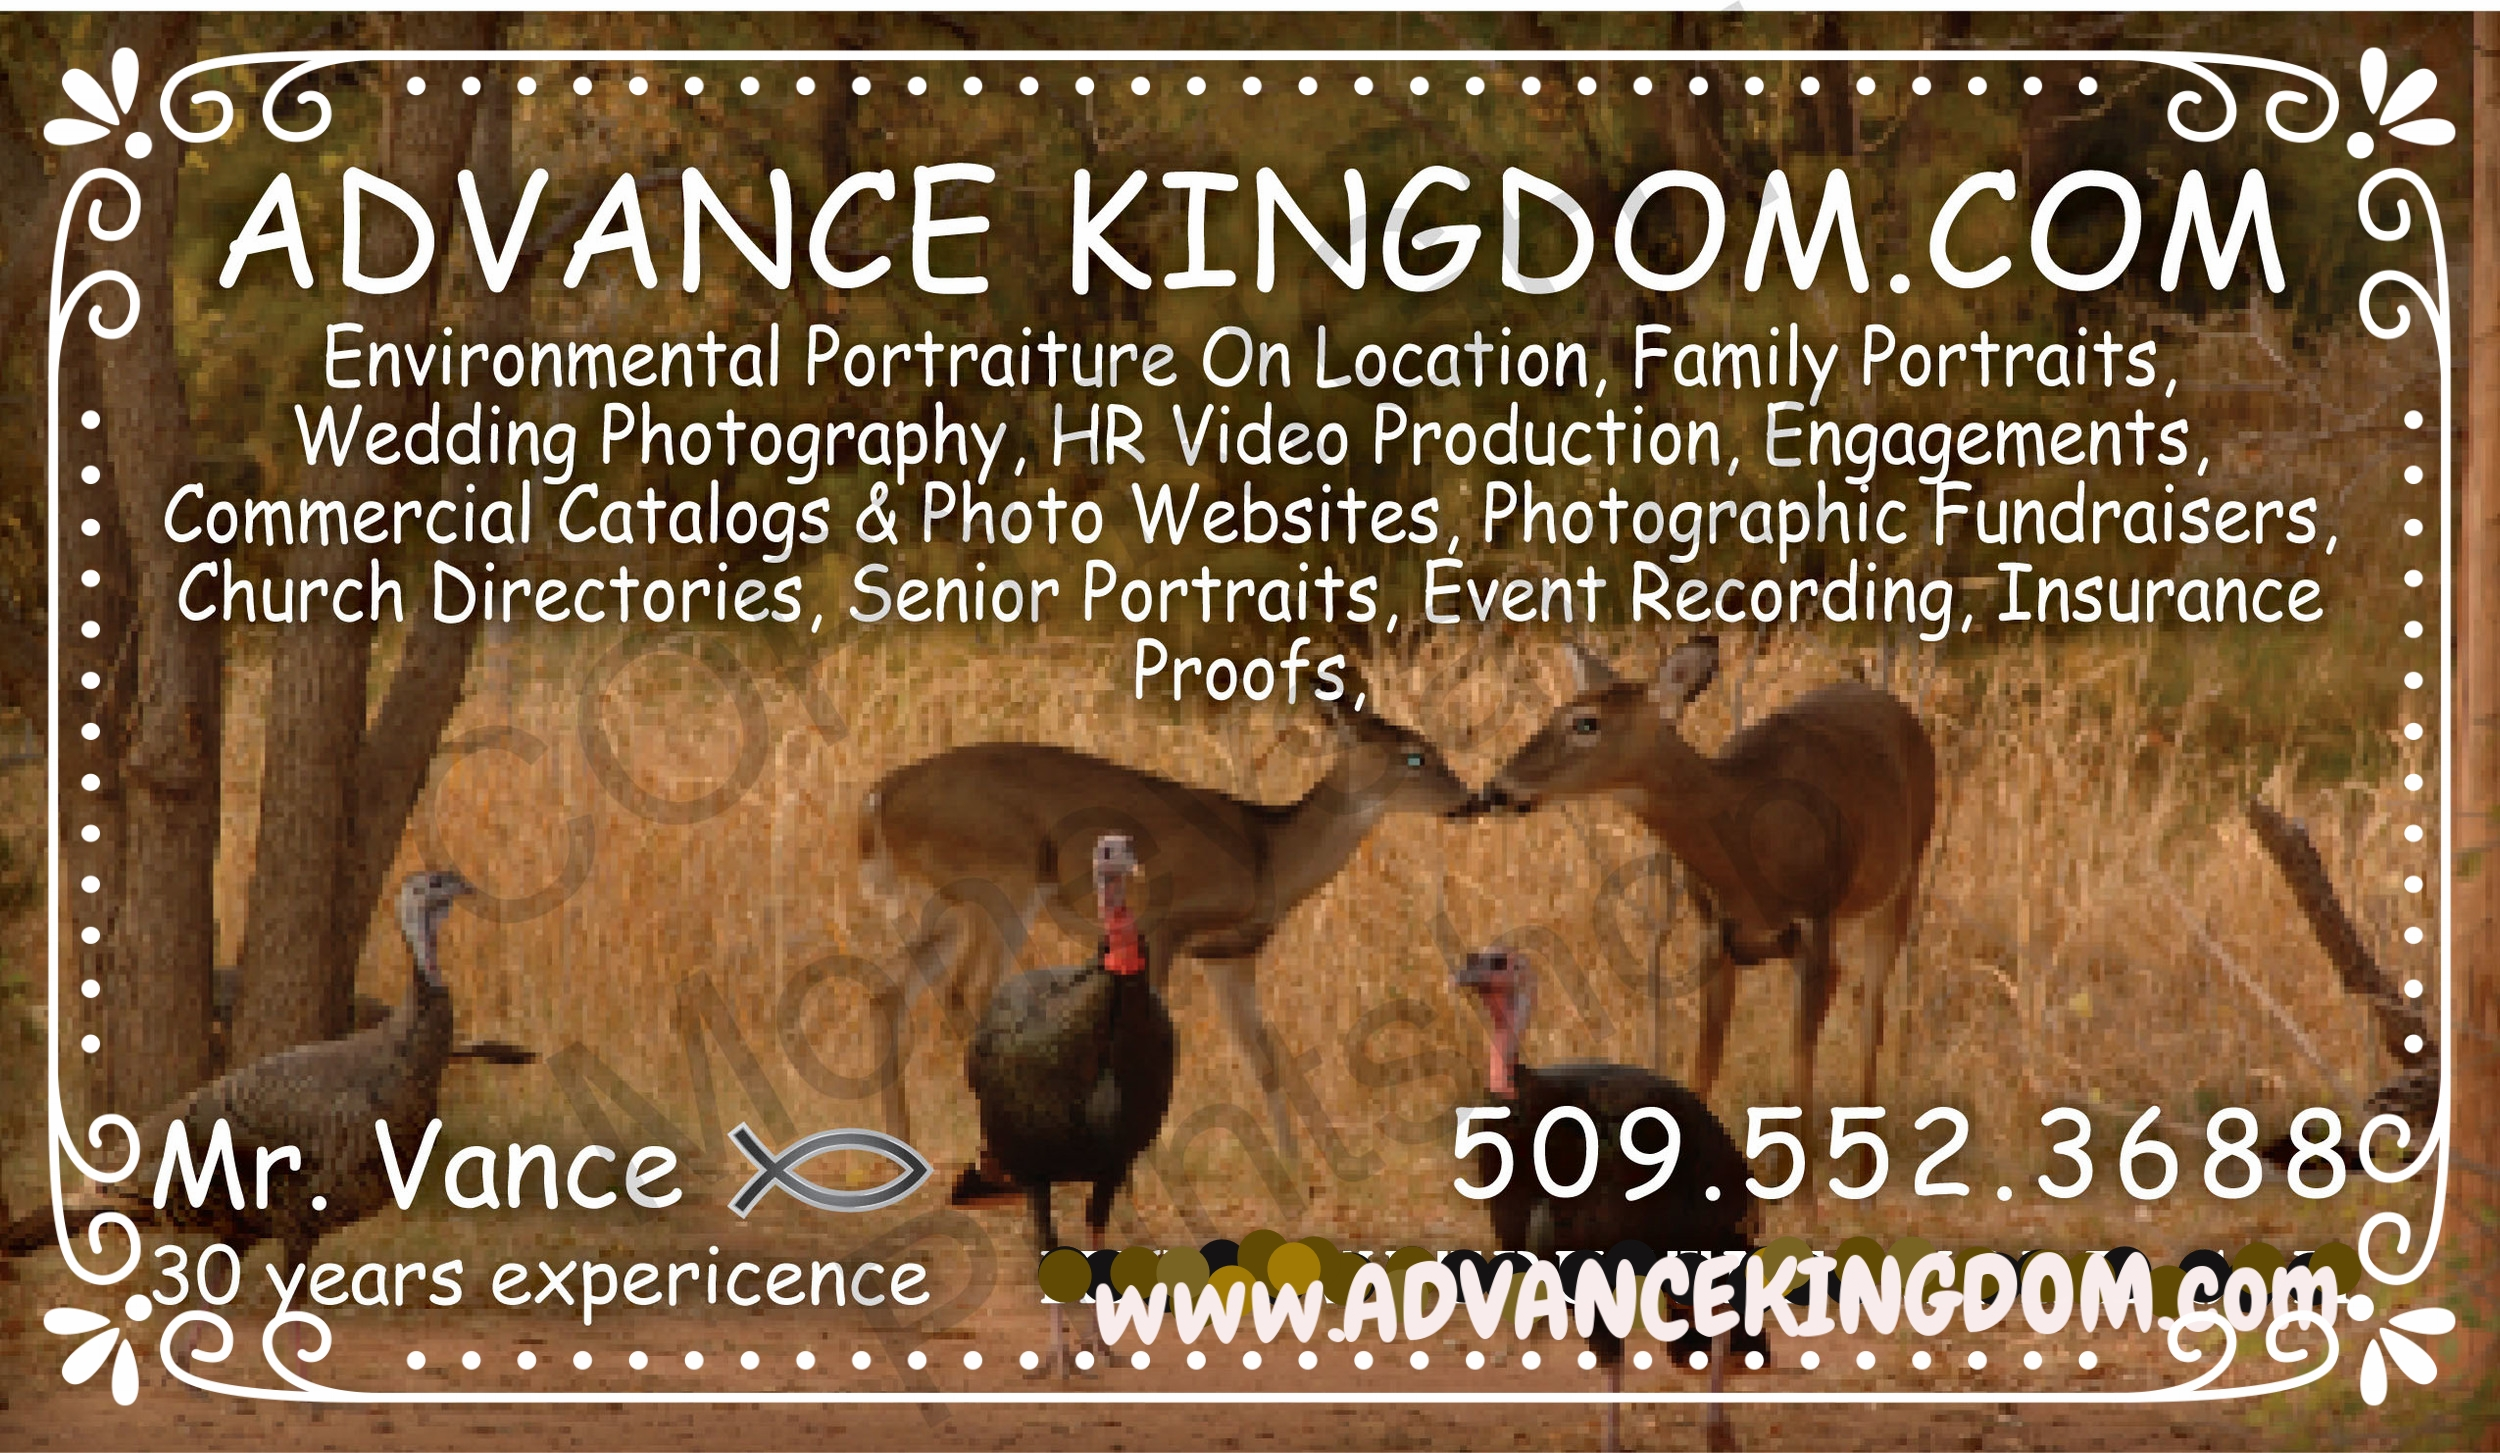 On location COMMISSIONED photography with in the LEWIS CLARK VALLEY Starting @ $100.oo   LOCAL SERVICES FROM CLARKSTON, WASHINGTON 99403